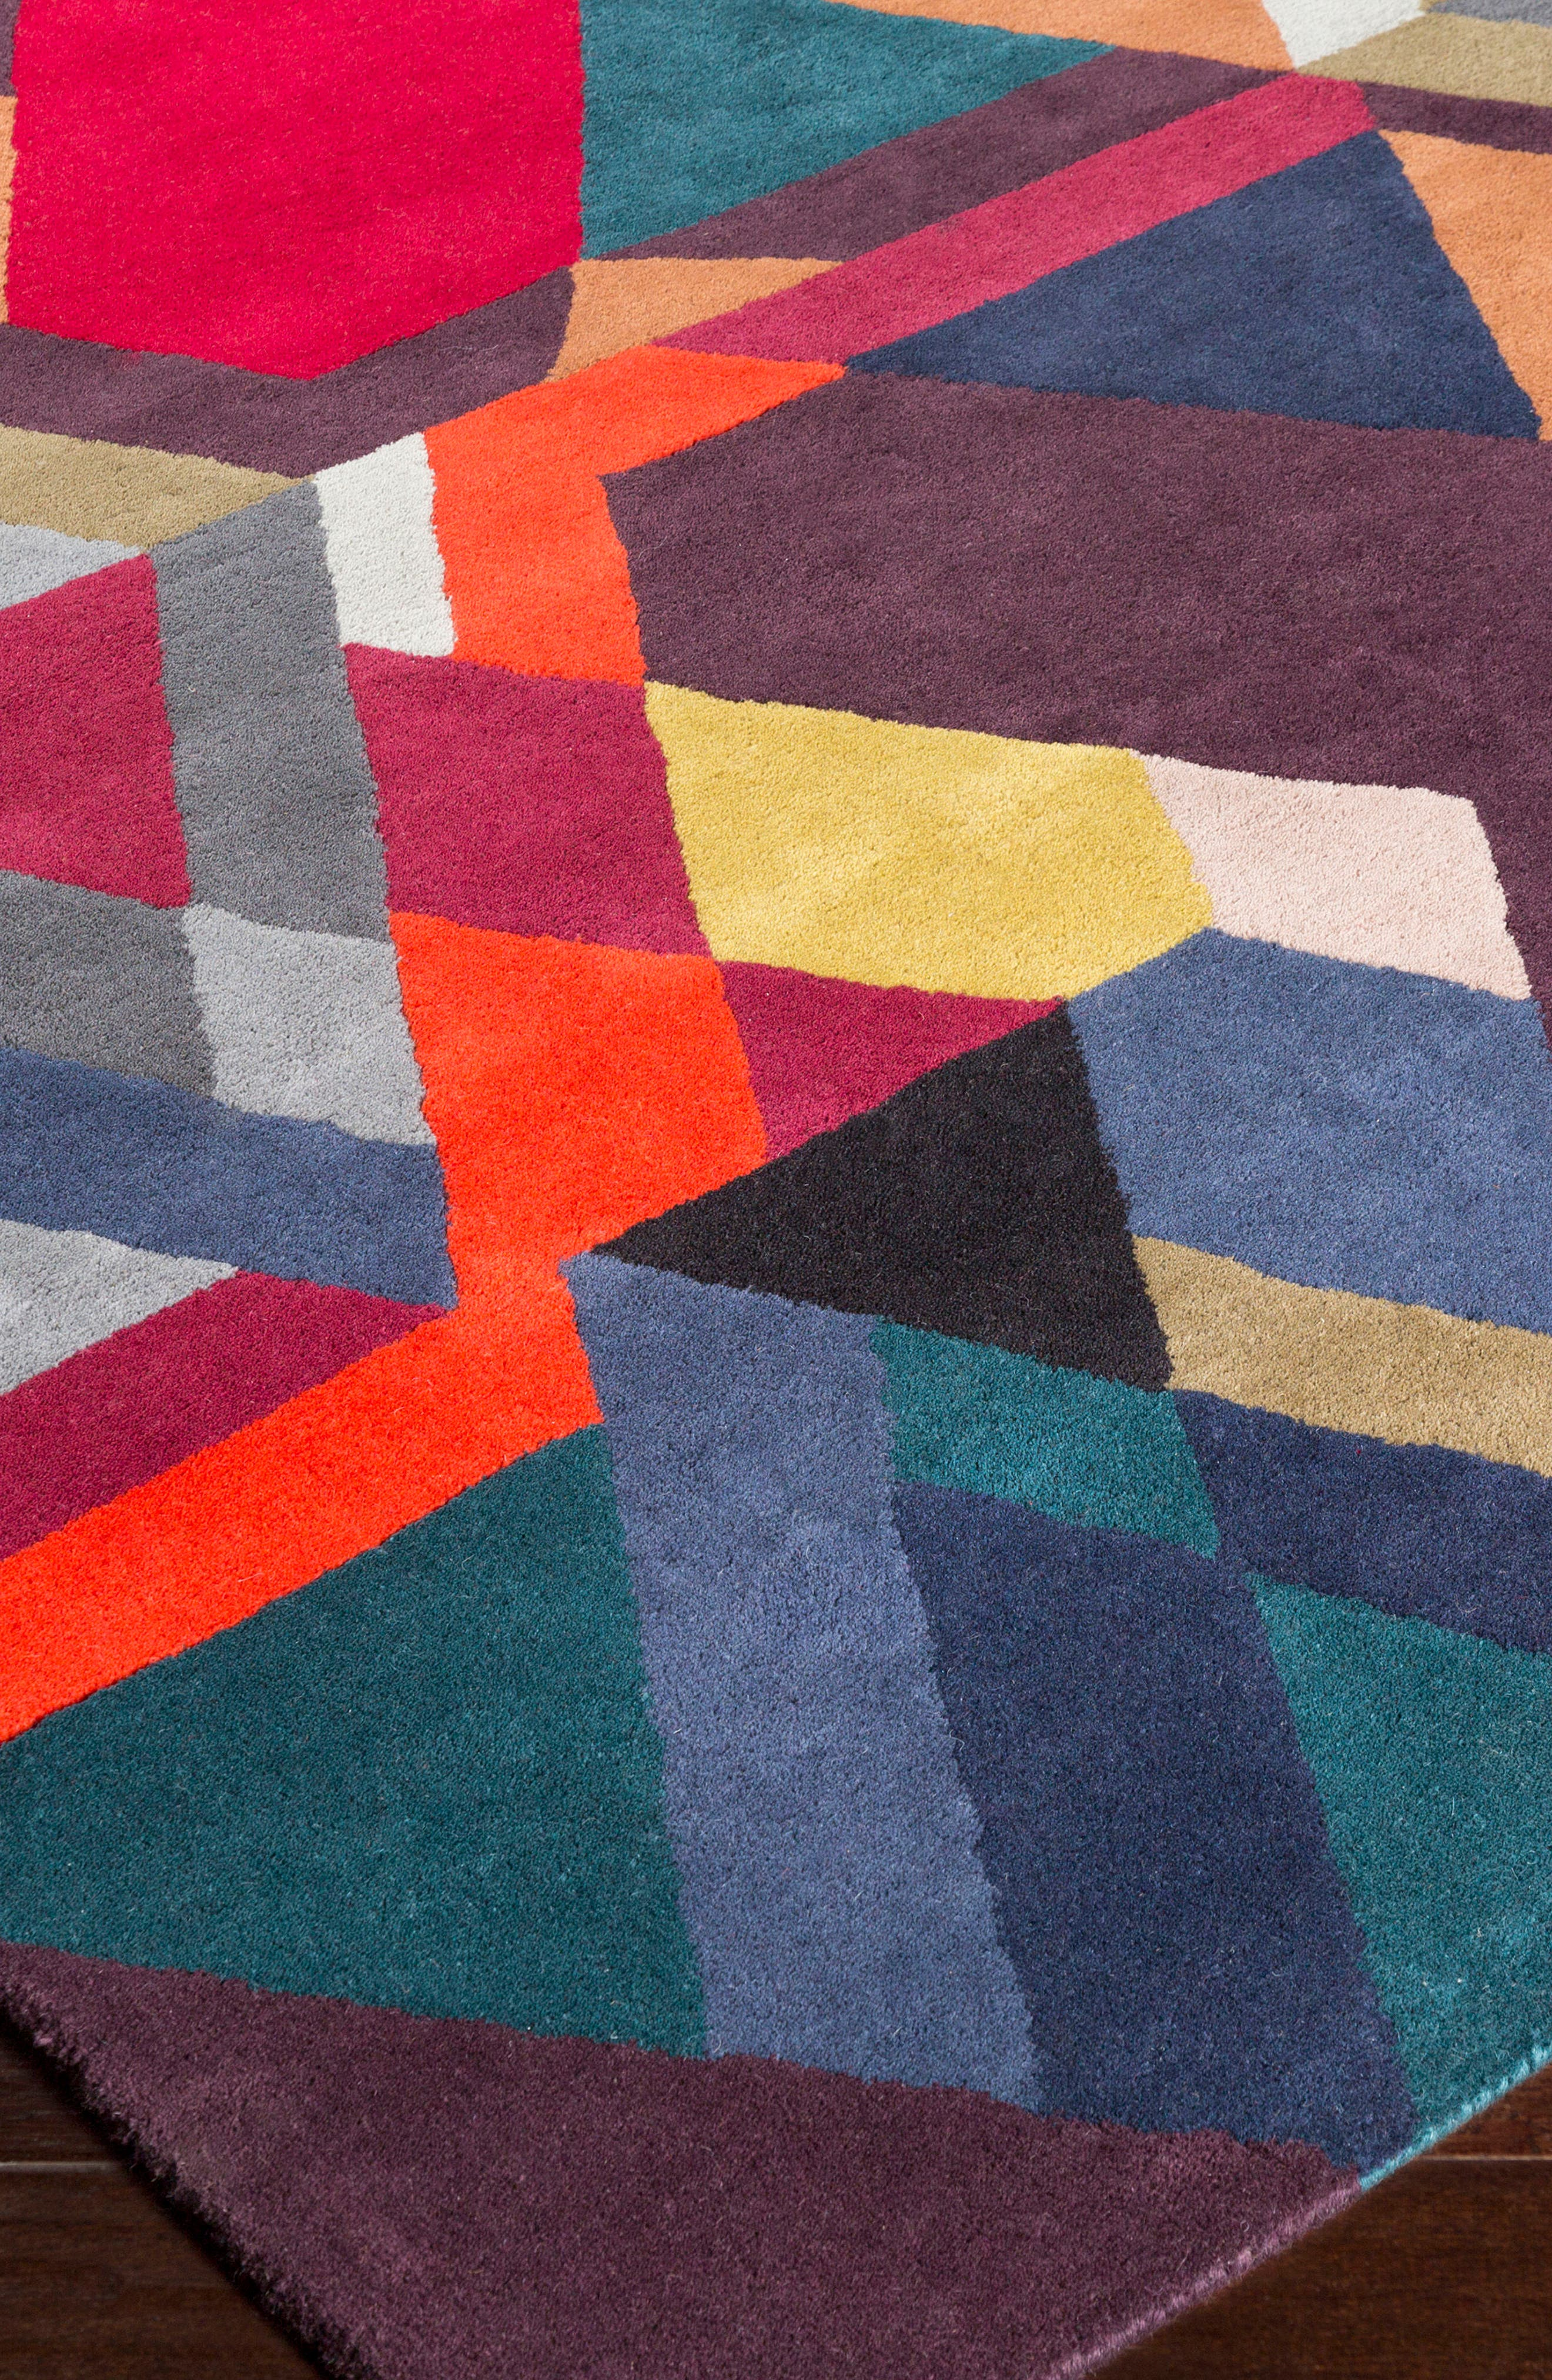 x Surya Iconic Wool Area Rug,                             Alternate thumbnail 2, color,                             Purple